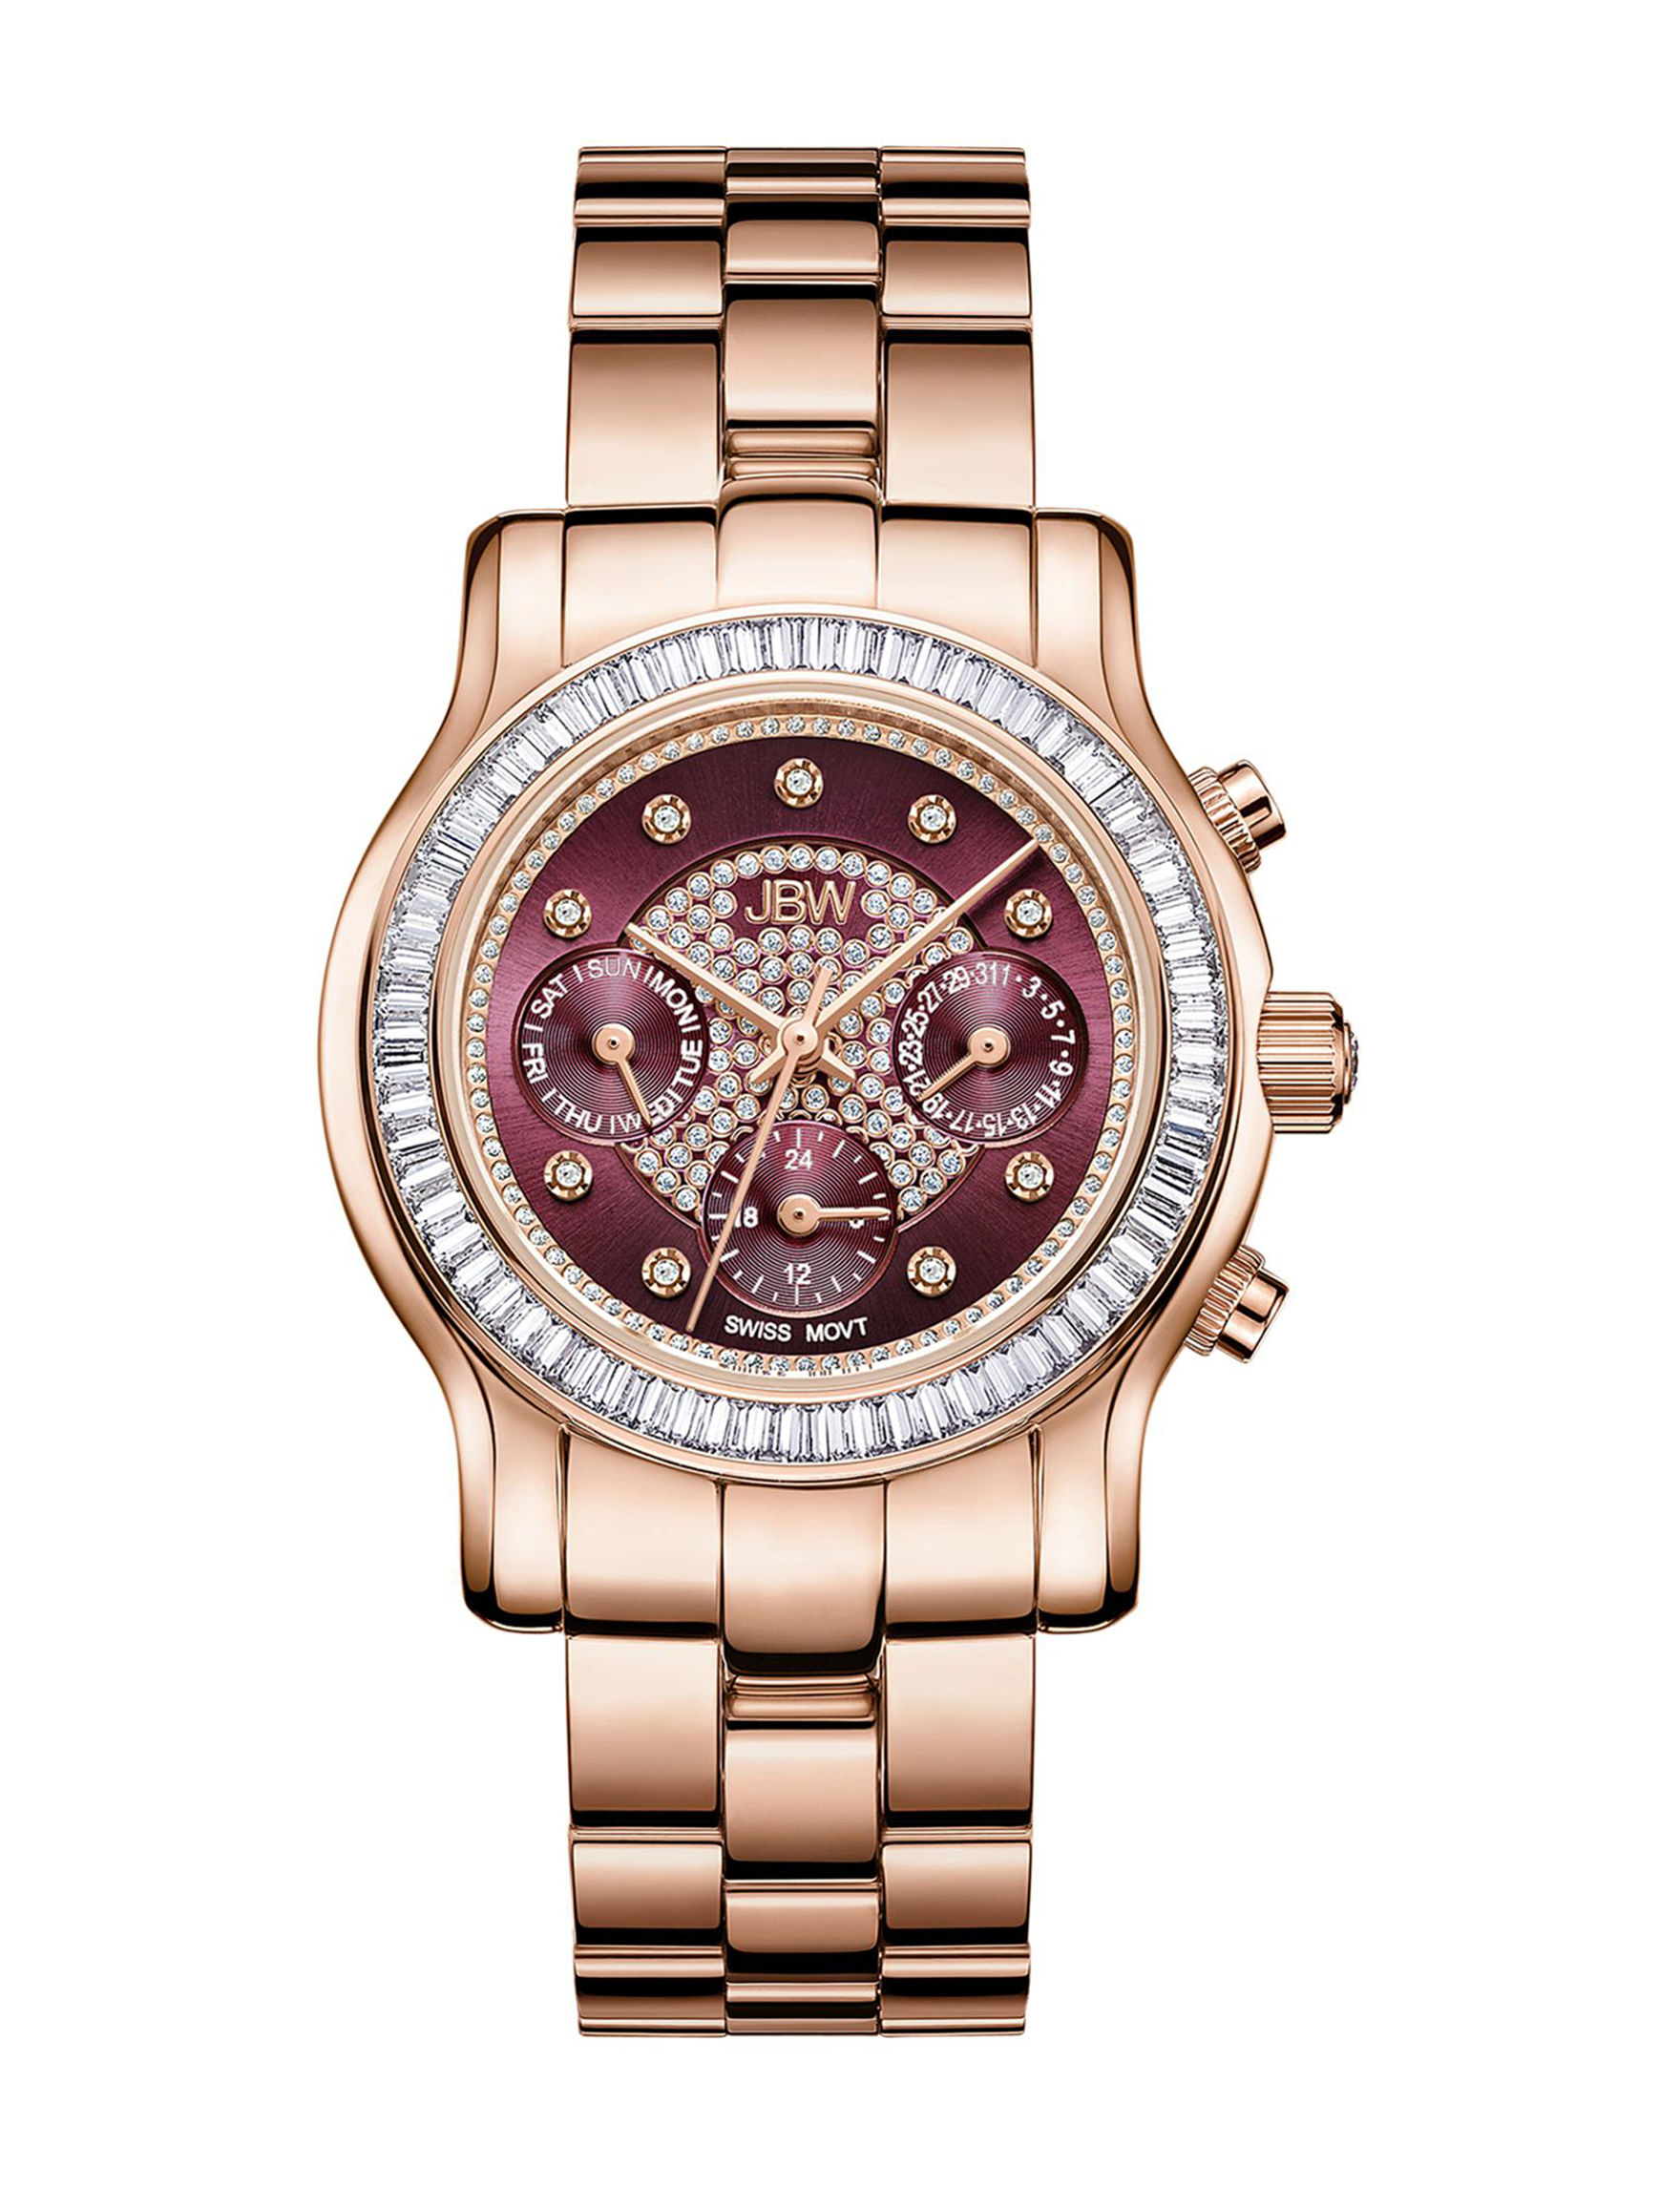 JBW Rose Gold Fashion Watches